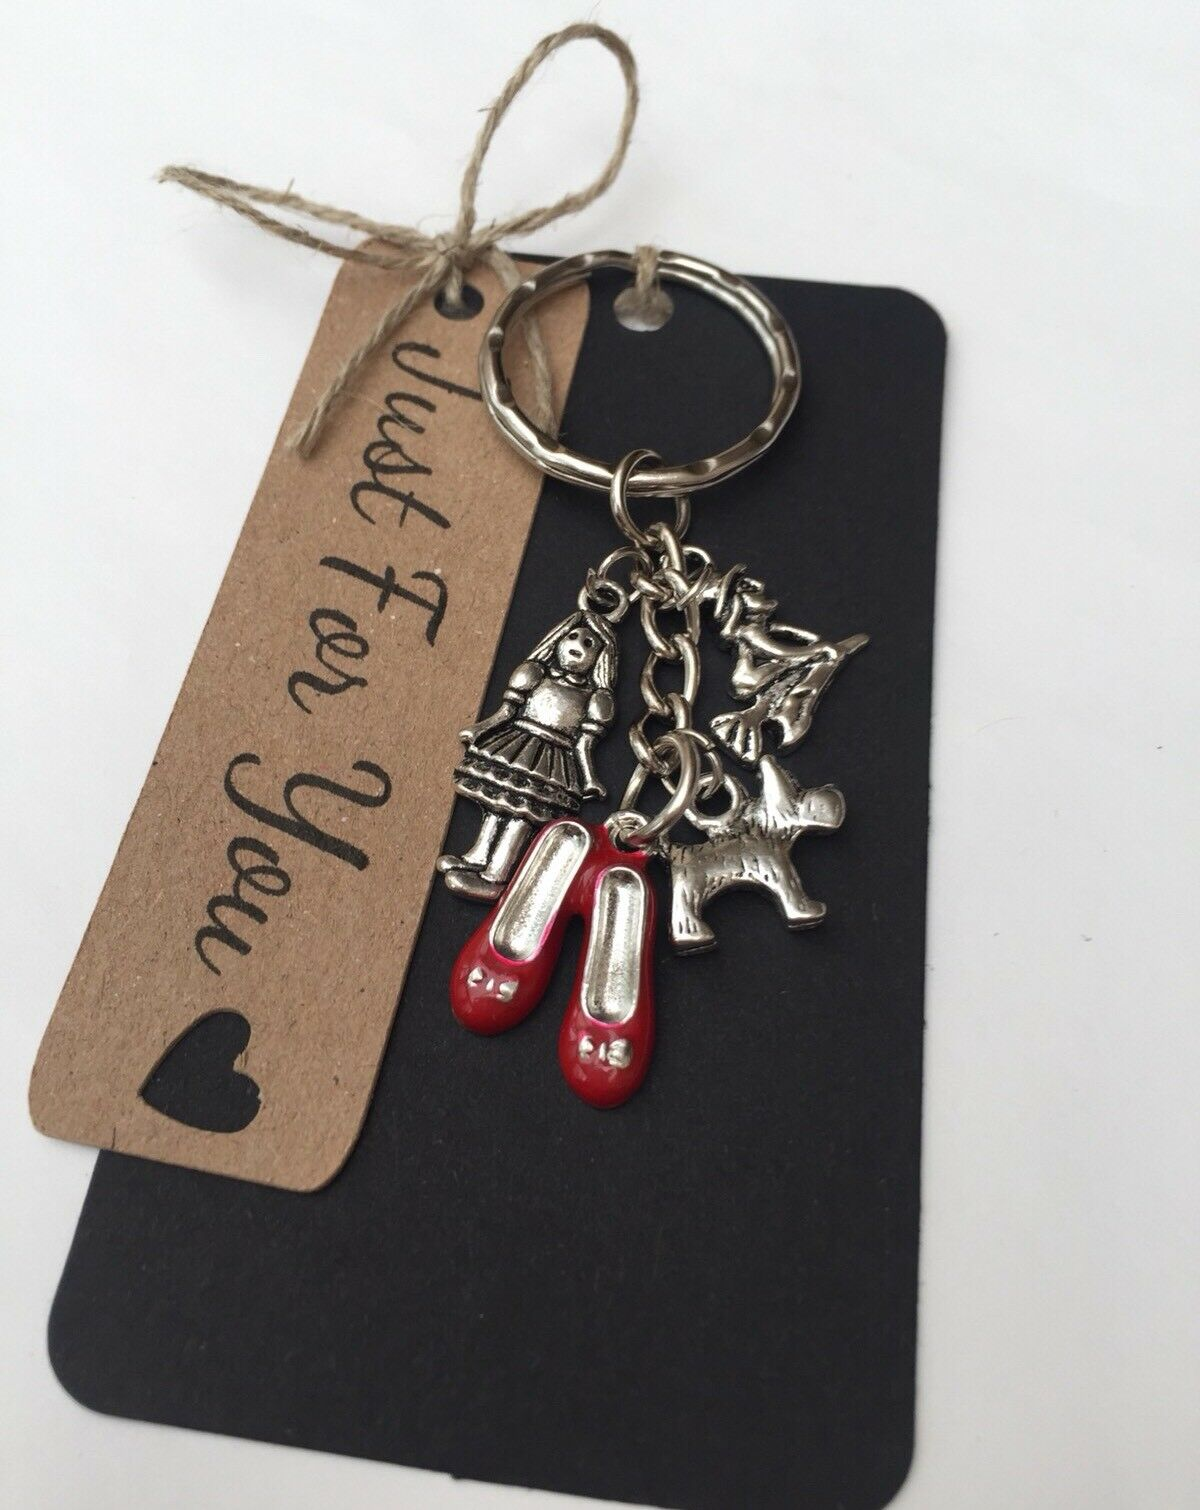 wizard of oz inspired keyring bag charm giftpresent christmas 1 of 2only 5 available